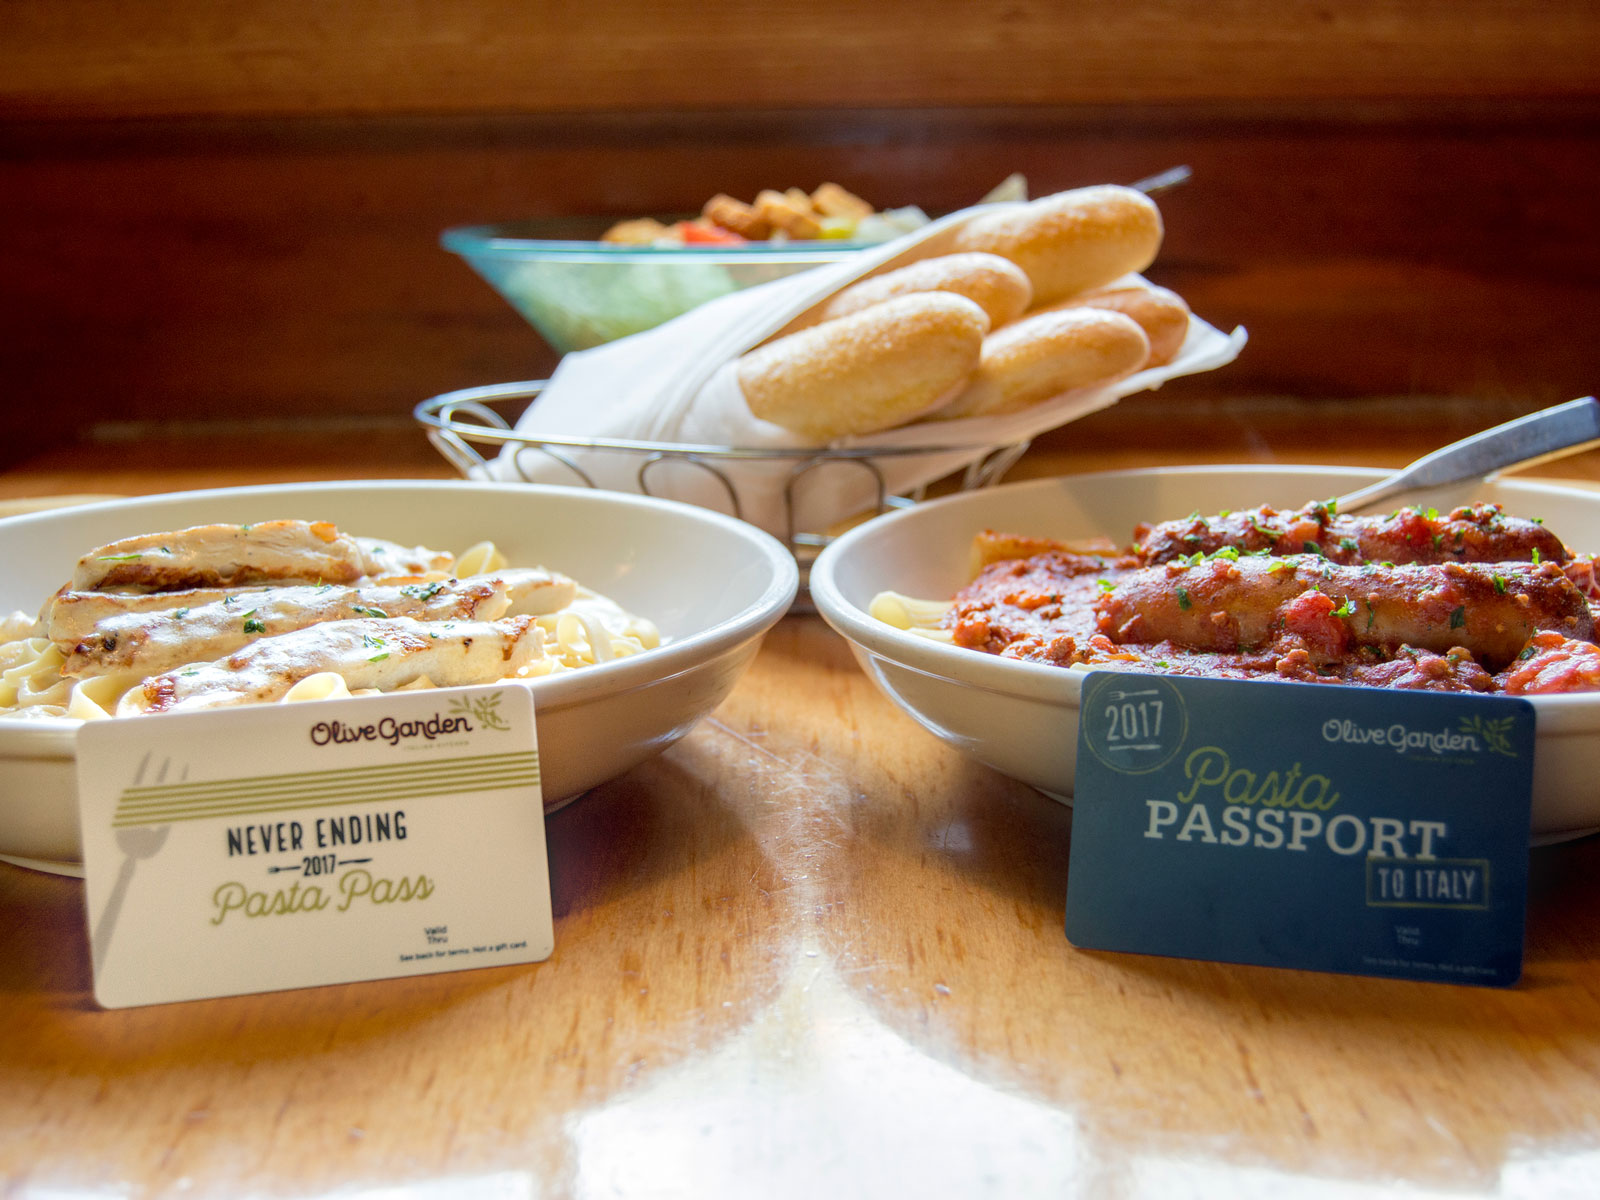 Olive Garden ups ante on popular never-ending pasta pass